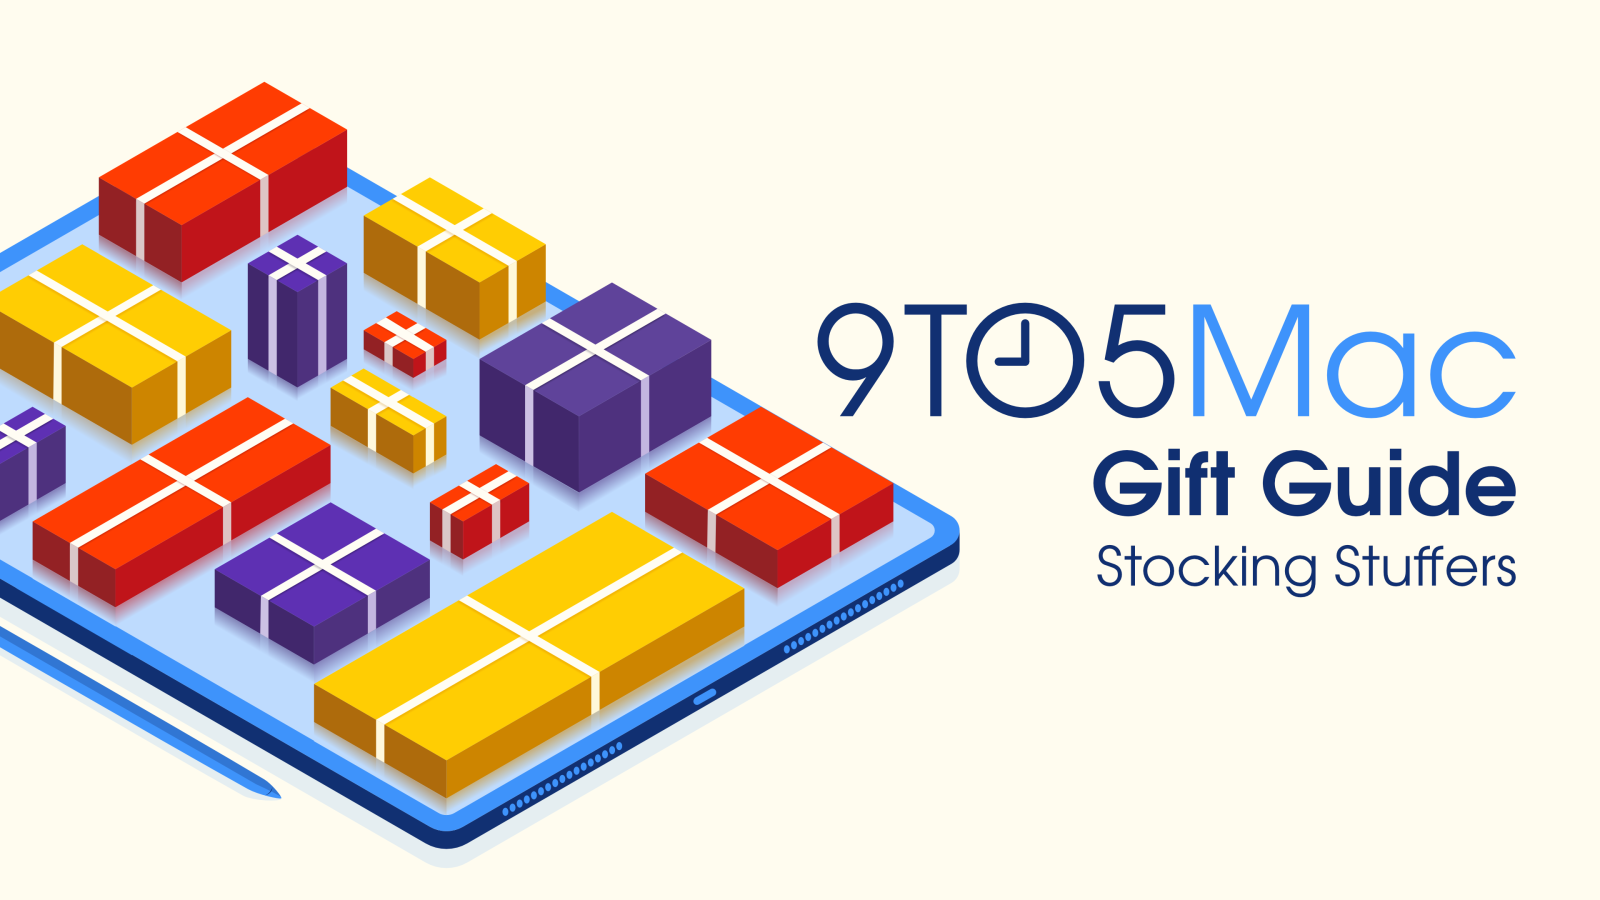 9to5Mac Gift Guide: Tech stocking stuffer picks to surprise and delight from $10-$30